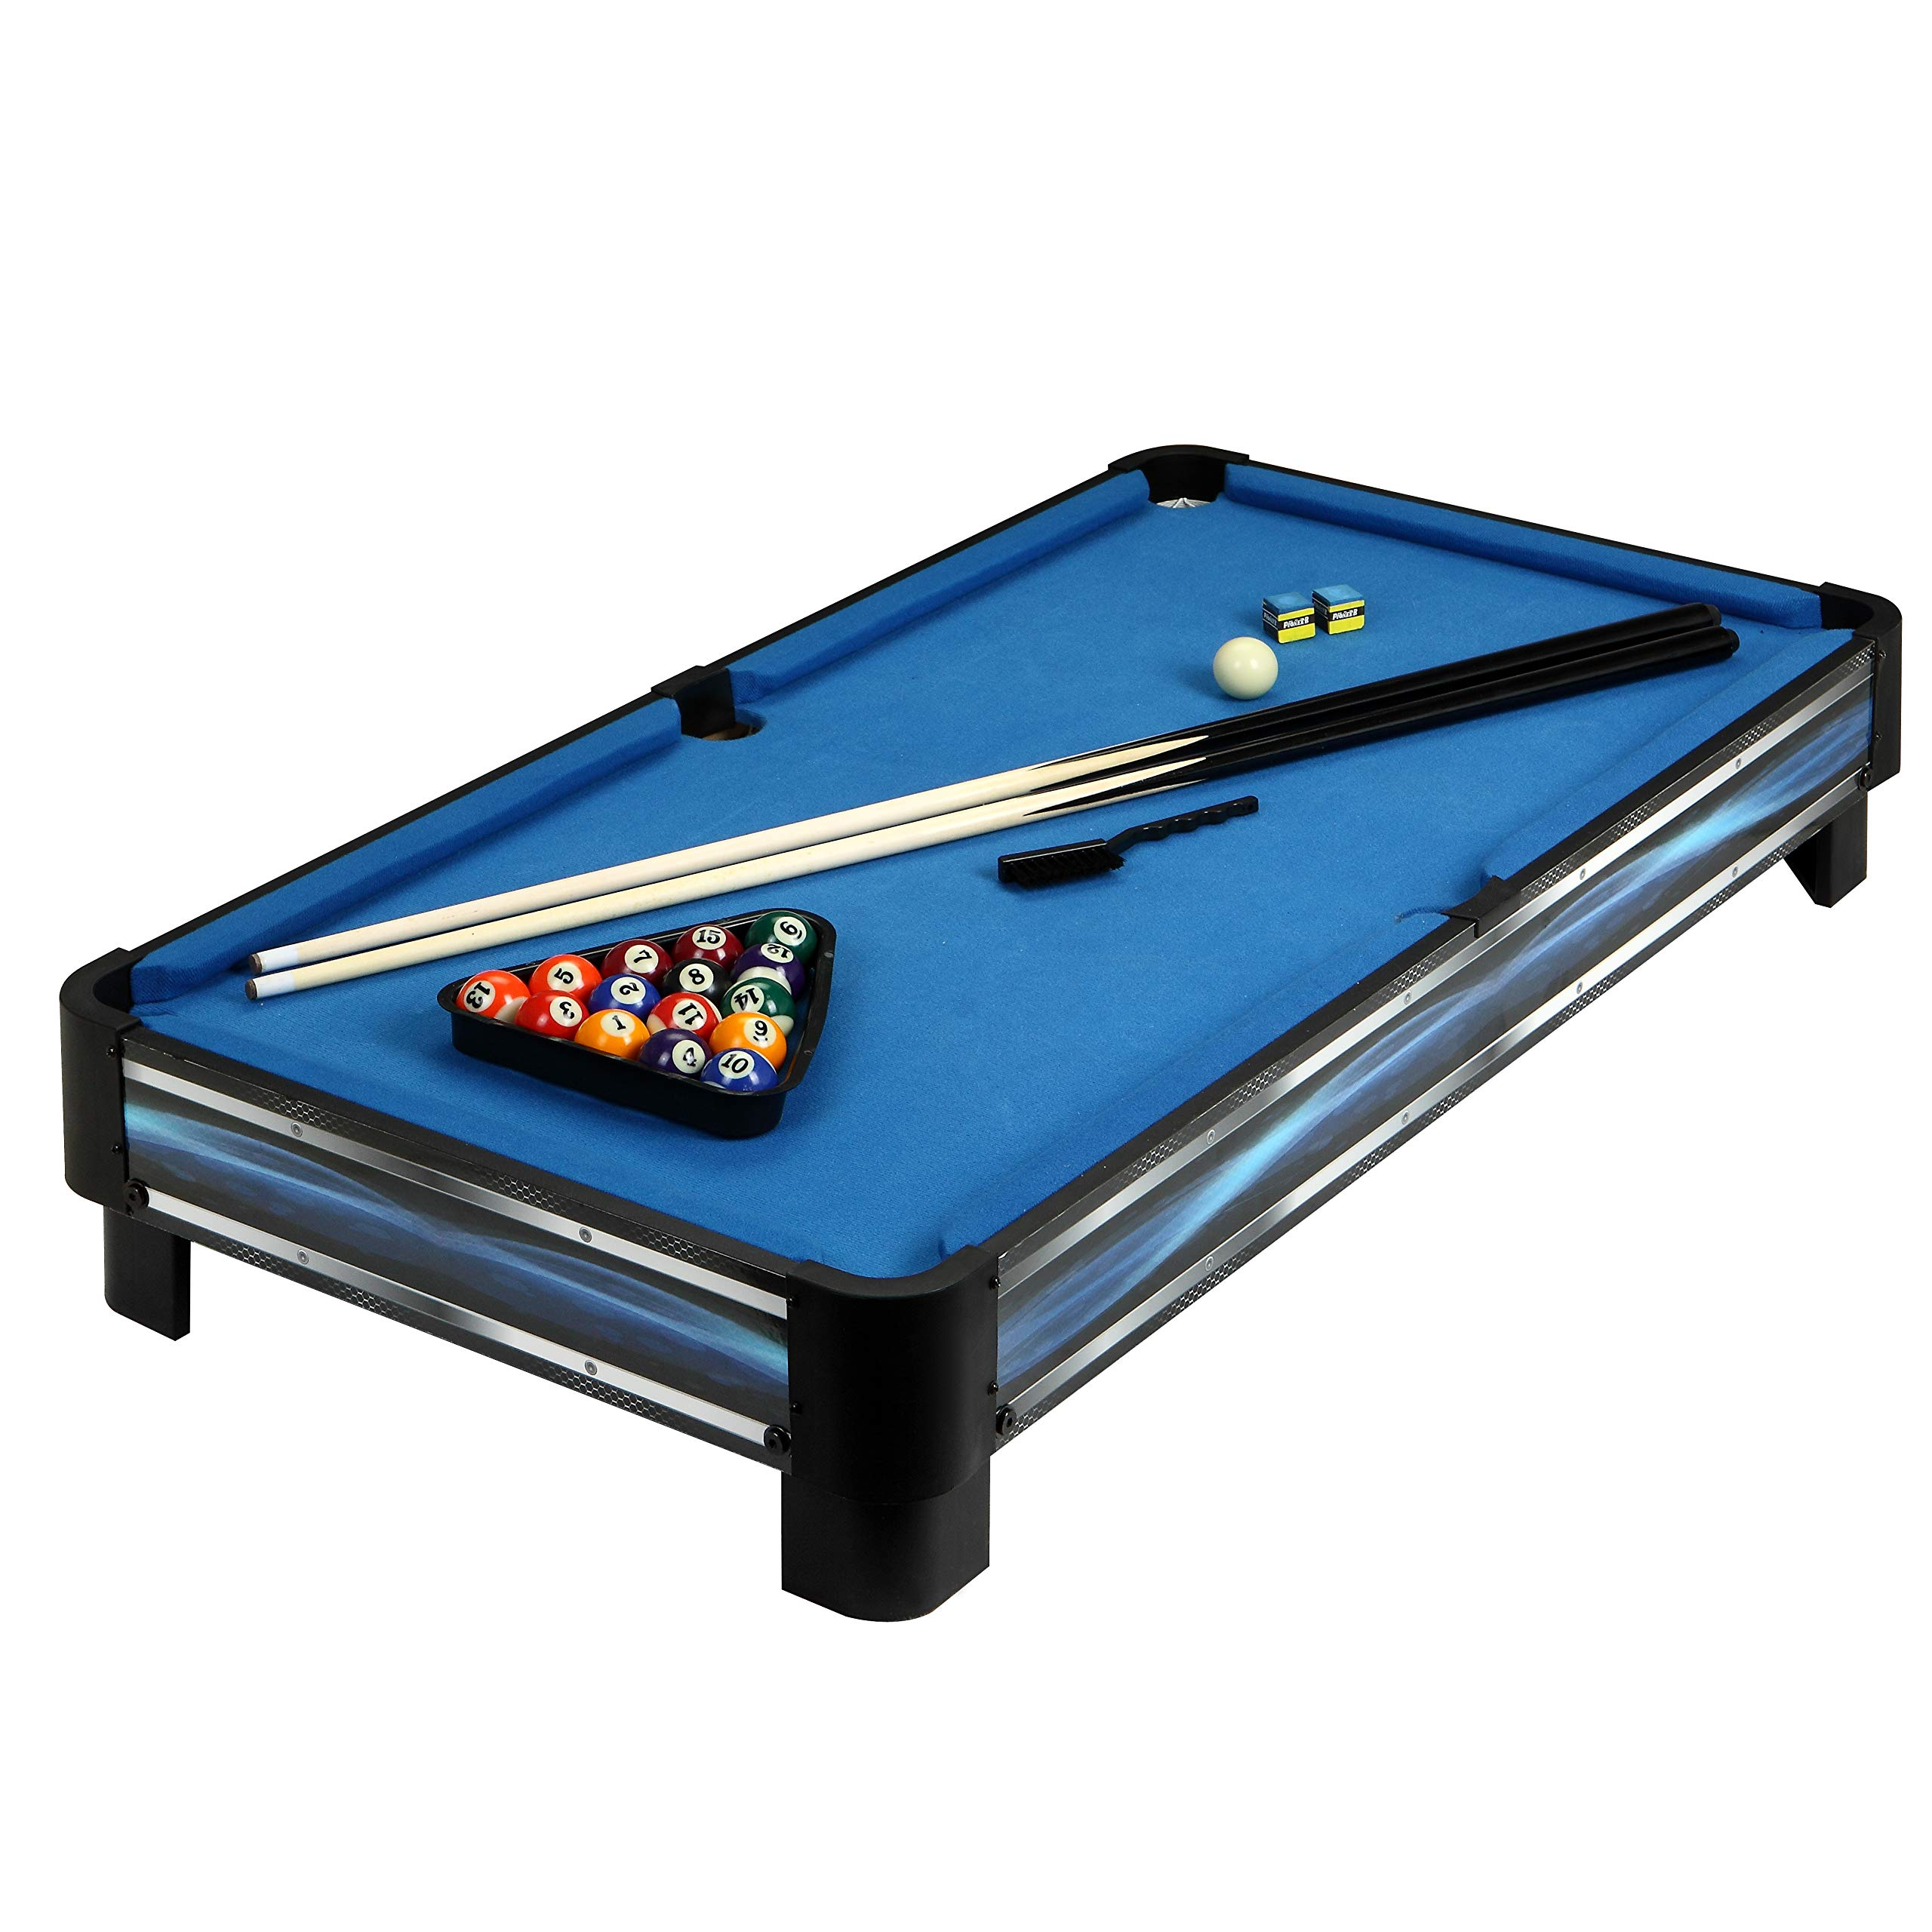 Hathaway Breakout 40-in Tabletop Pool Table, Blue by Hathaway